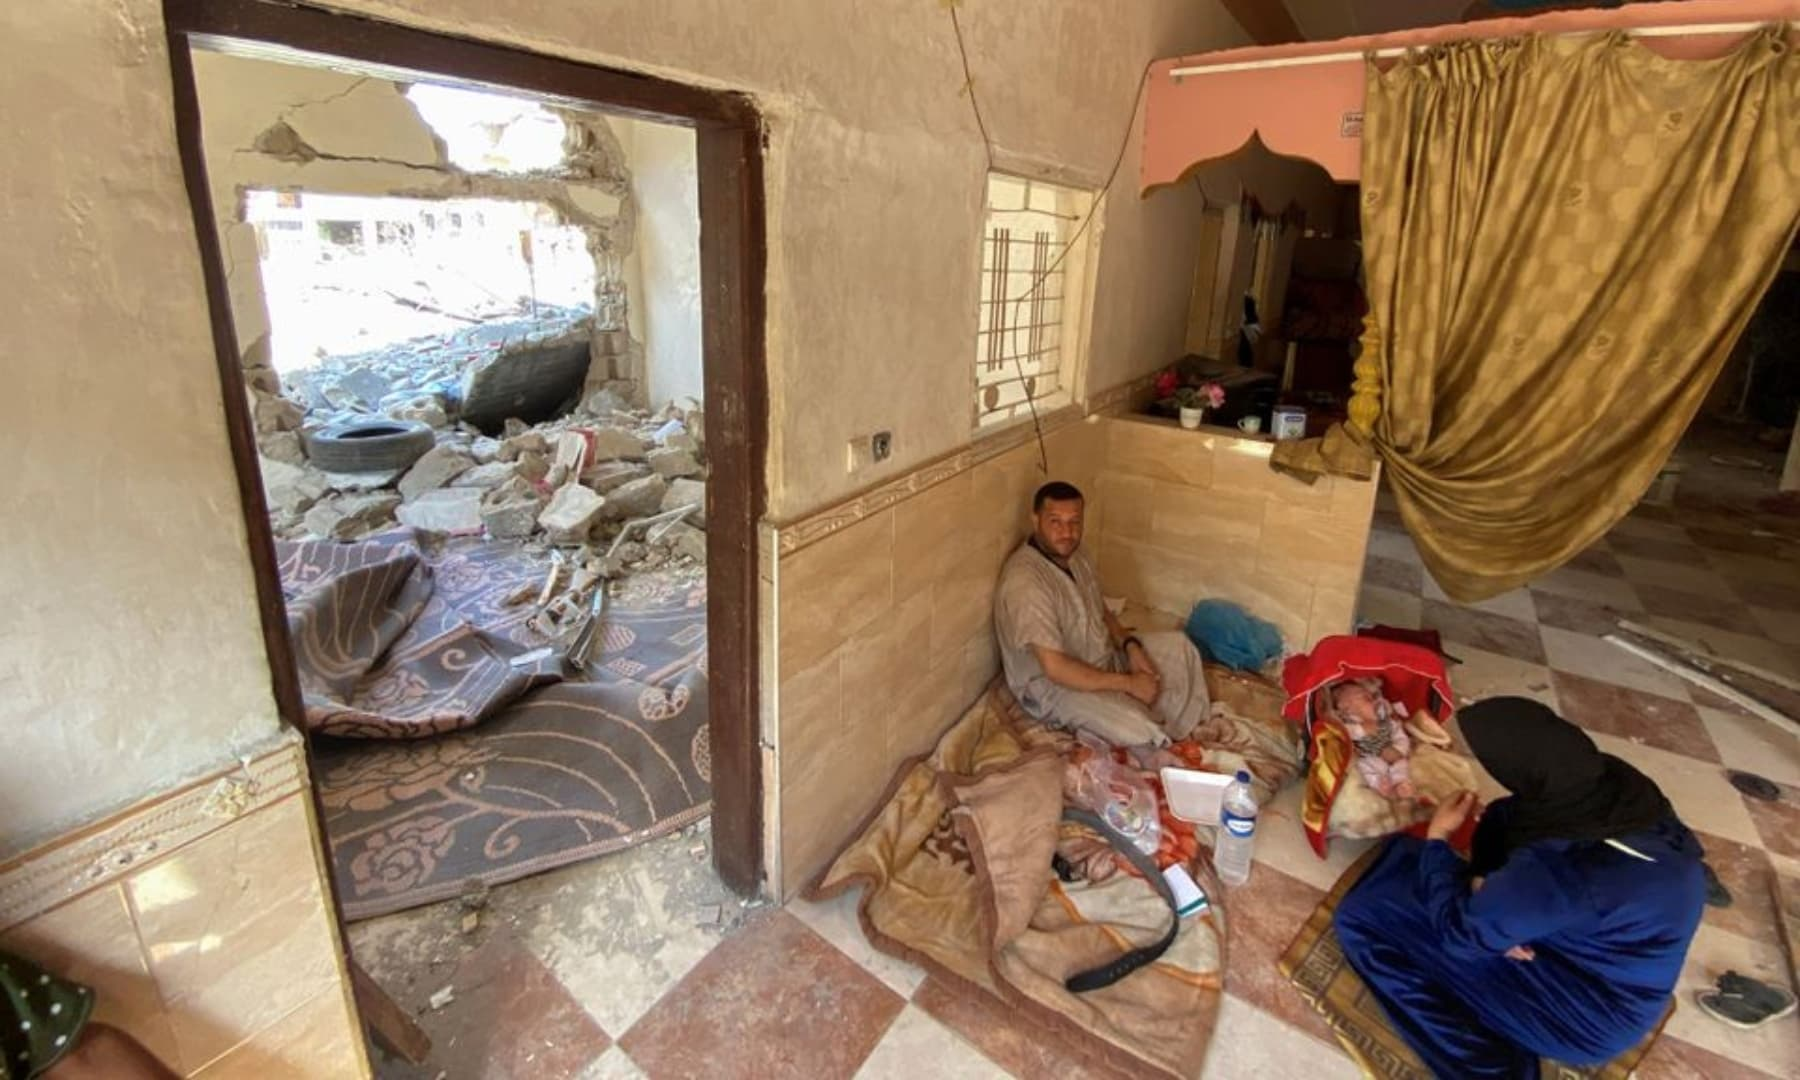 Palestinians sit inside their damaged house following Israeli-Palestinian truce, in Beit Hanoun in the northern Gaza Strip, May 23, 2021. — Reuters